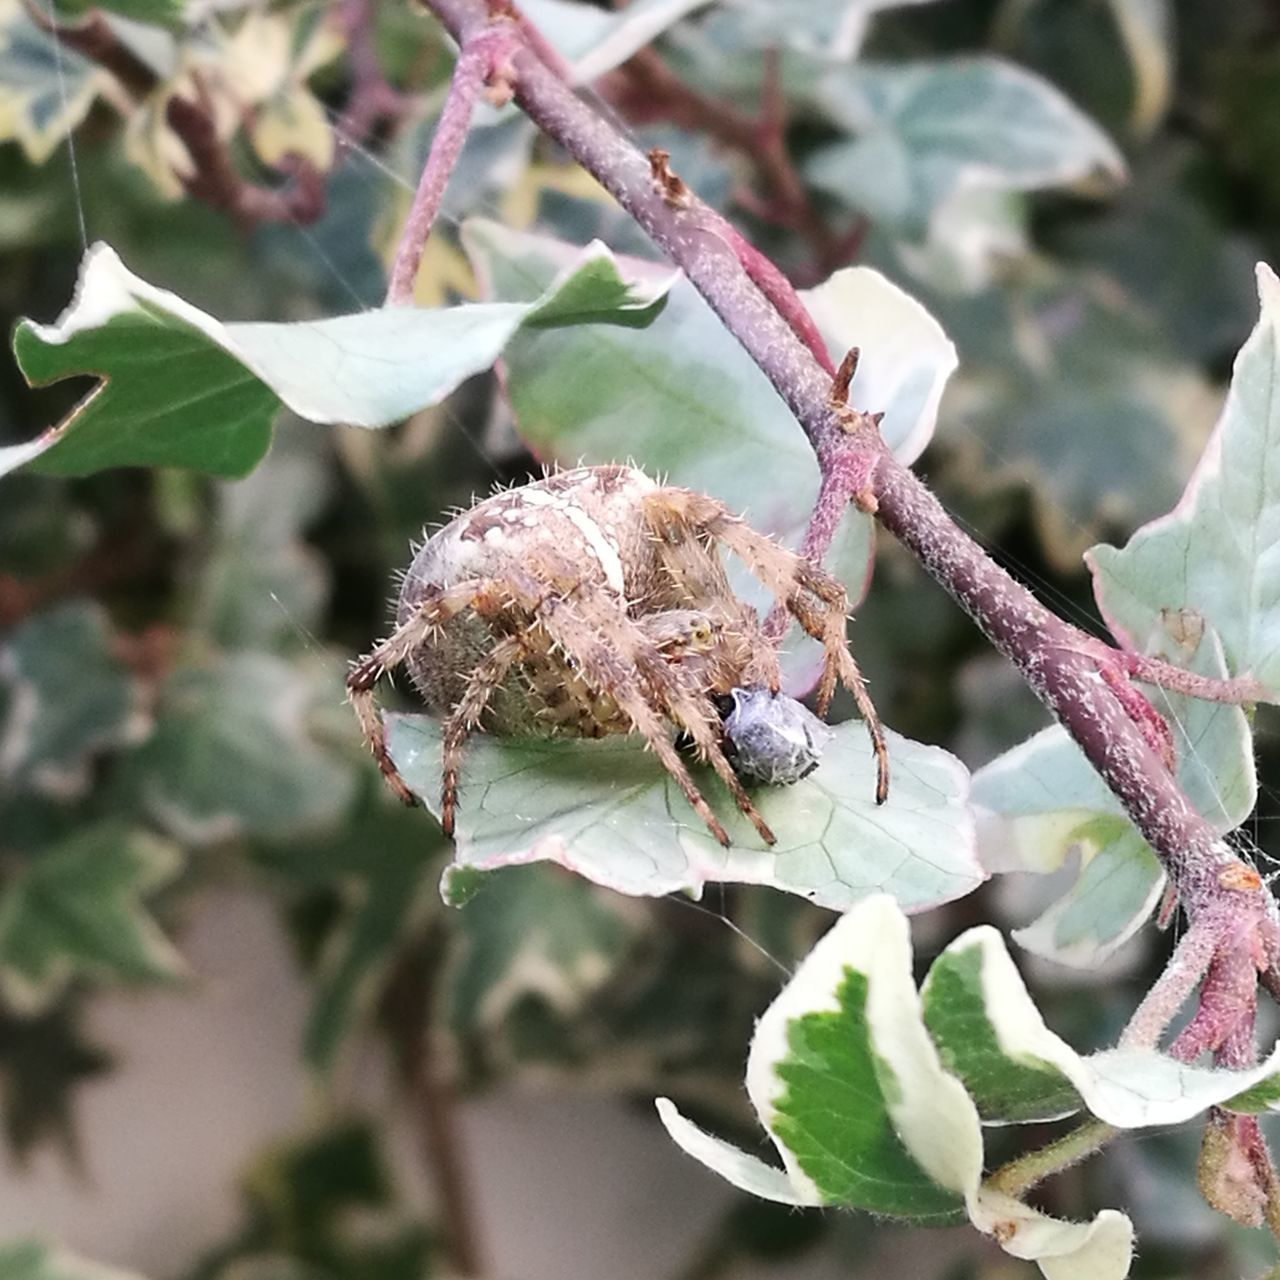 one animal, animals in the wild, animal themes, leaf, insect, day, nature, no people, plant, close-up, outdoors, animal wildlife, focus on foreground, fragility, beauty in nature, tree